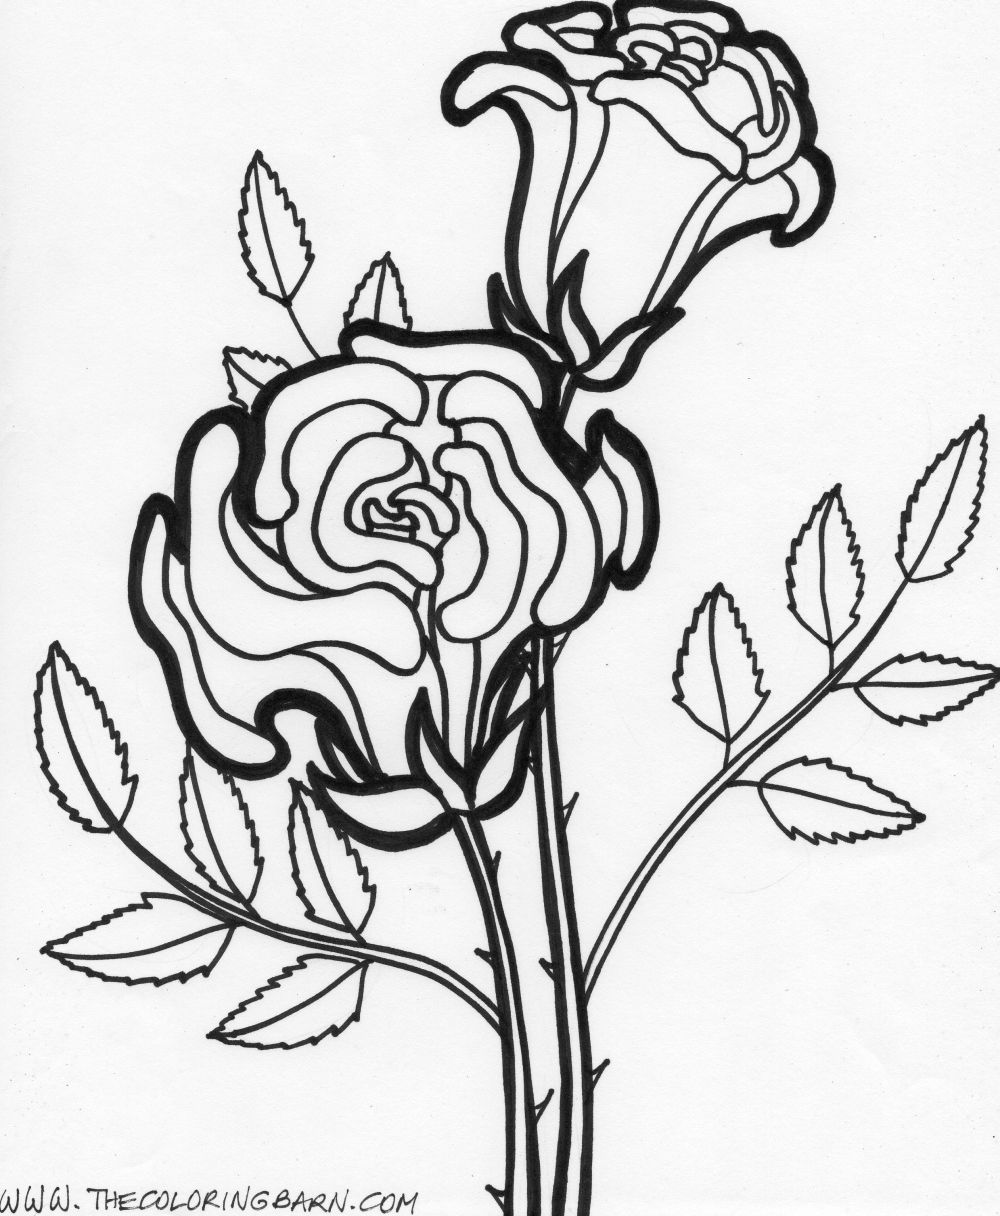 Coloring pages worksheets simple flower coloring pages for Coloring pages for kids flowers